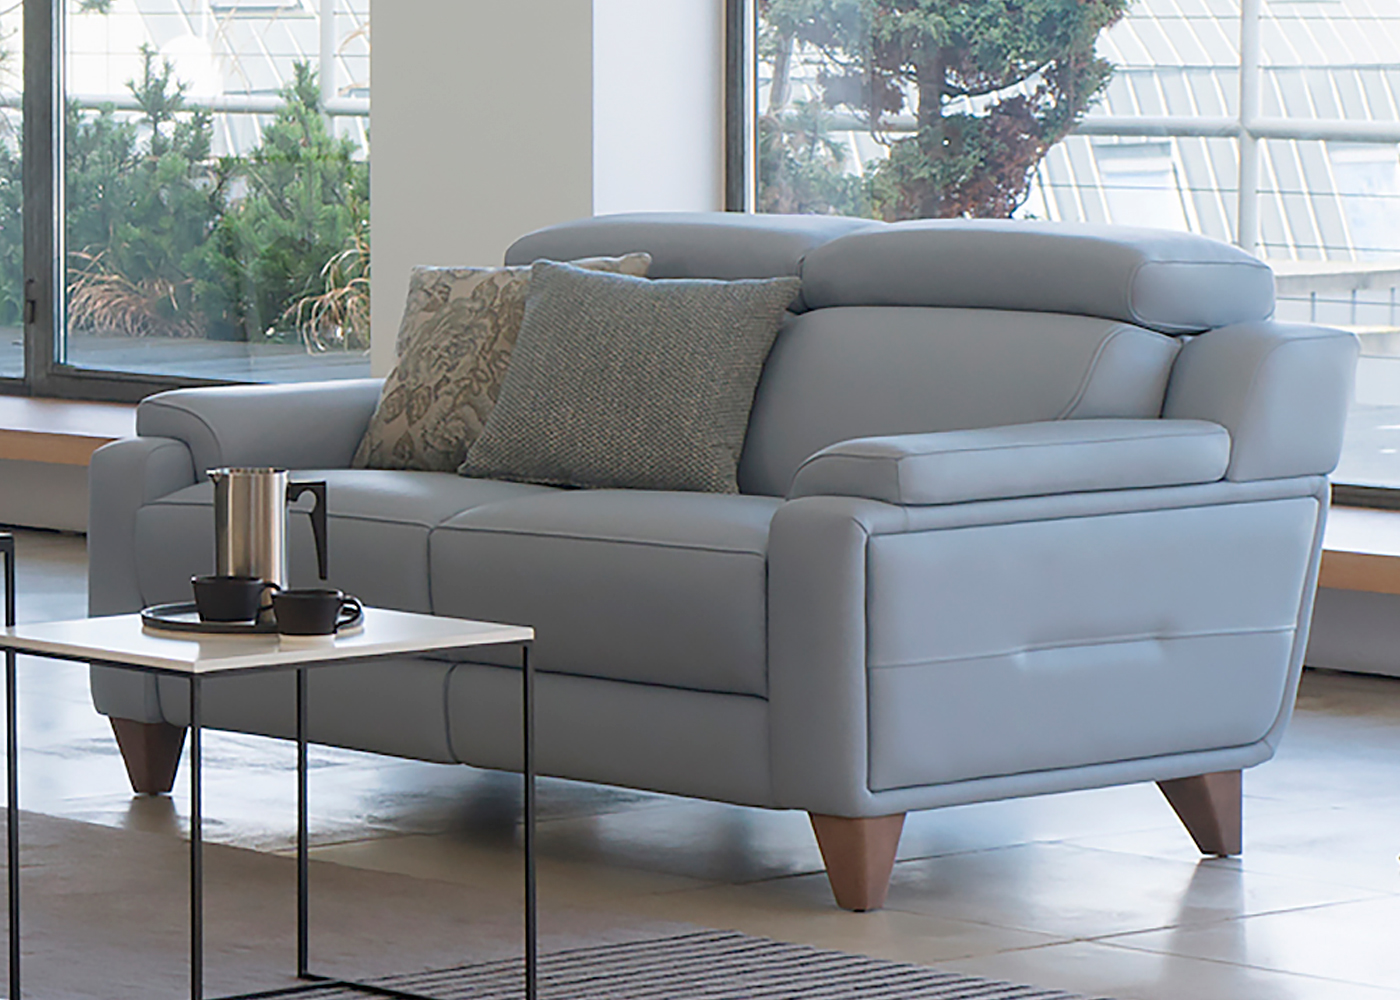 knoll sofas uk air sofa chair online parker evolution 2 seater midfurn furniture